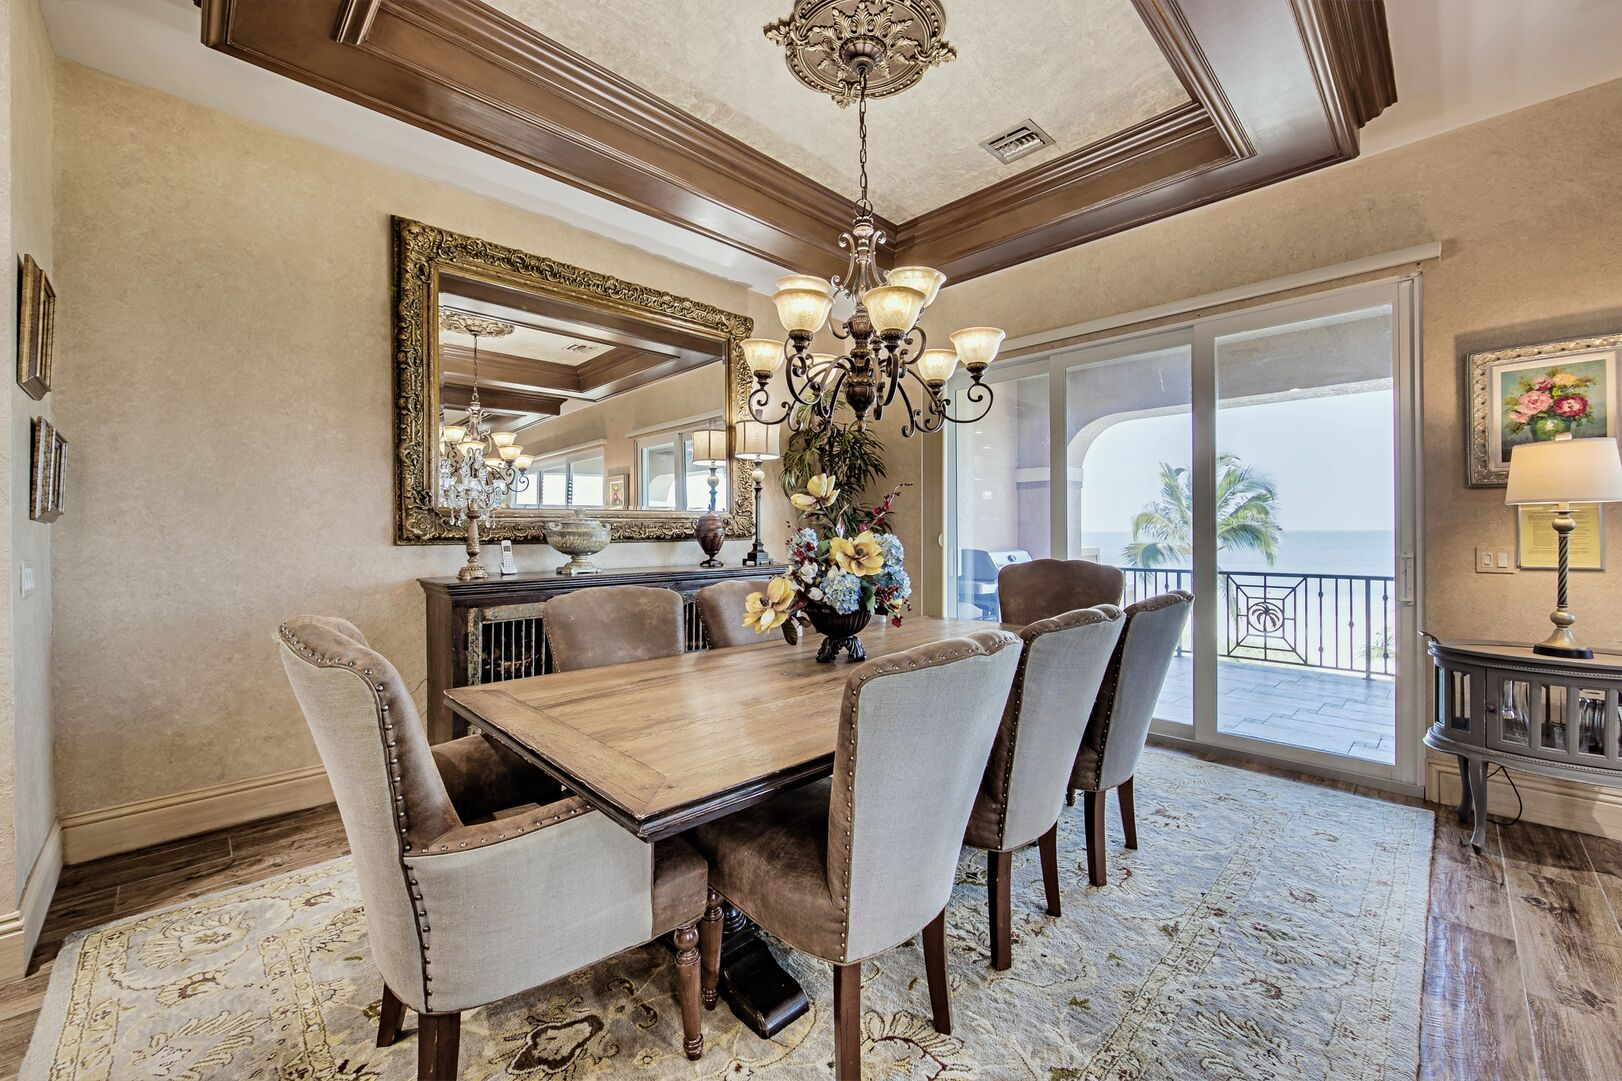 Dining Set, Chandelier, Console Table, Mirror and Sliding Doors to the Balcony.